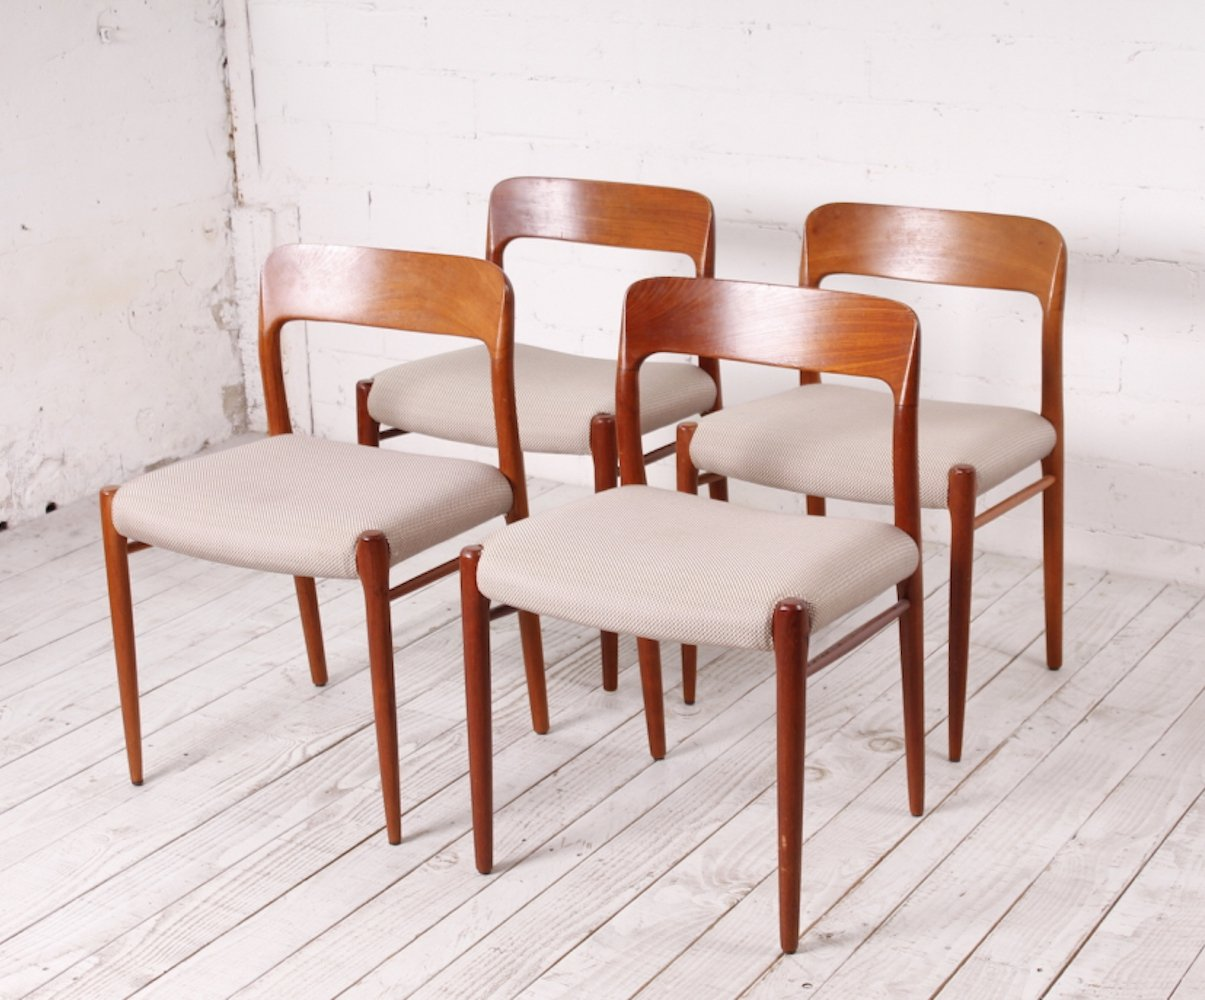 Set of 4 Teak Dining Chairs no 75 by Niels Otto Møller, 1960s